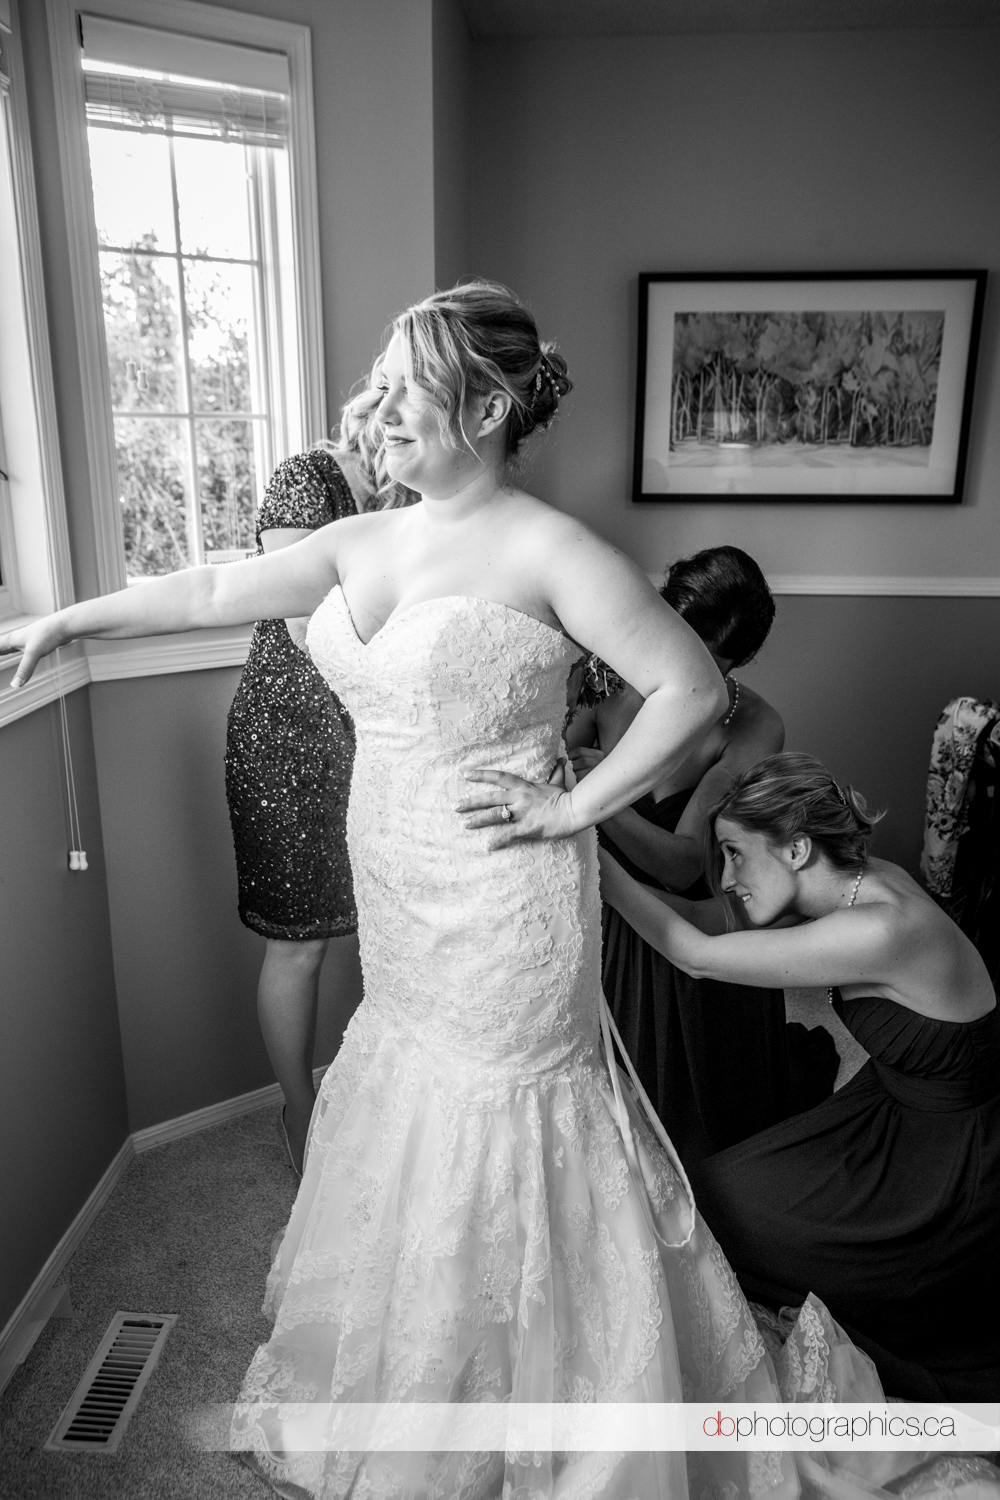 Lauren & Tim's Wedding - 20150829 - 0164.jpg